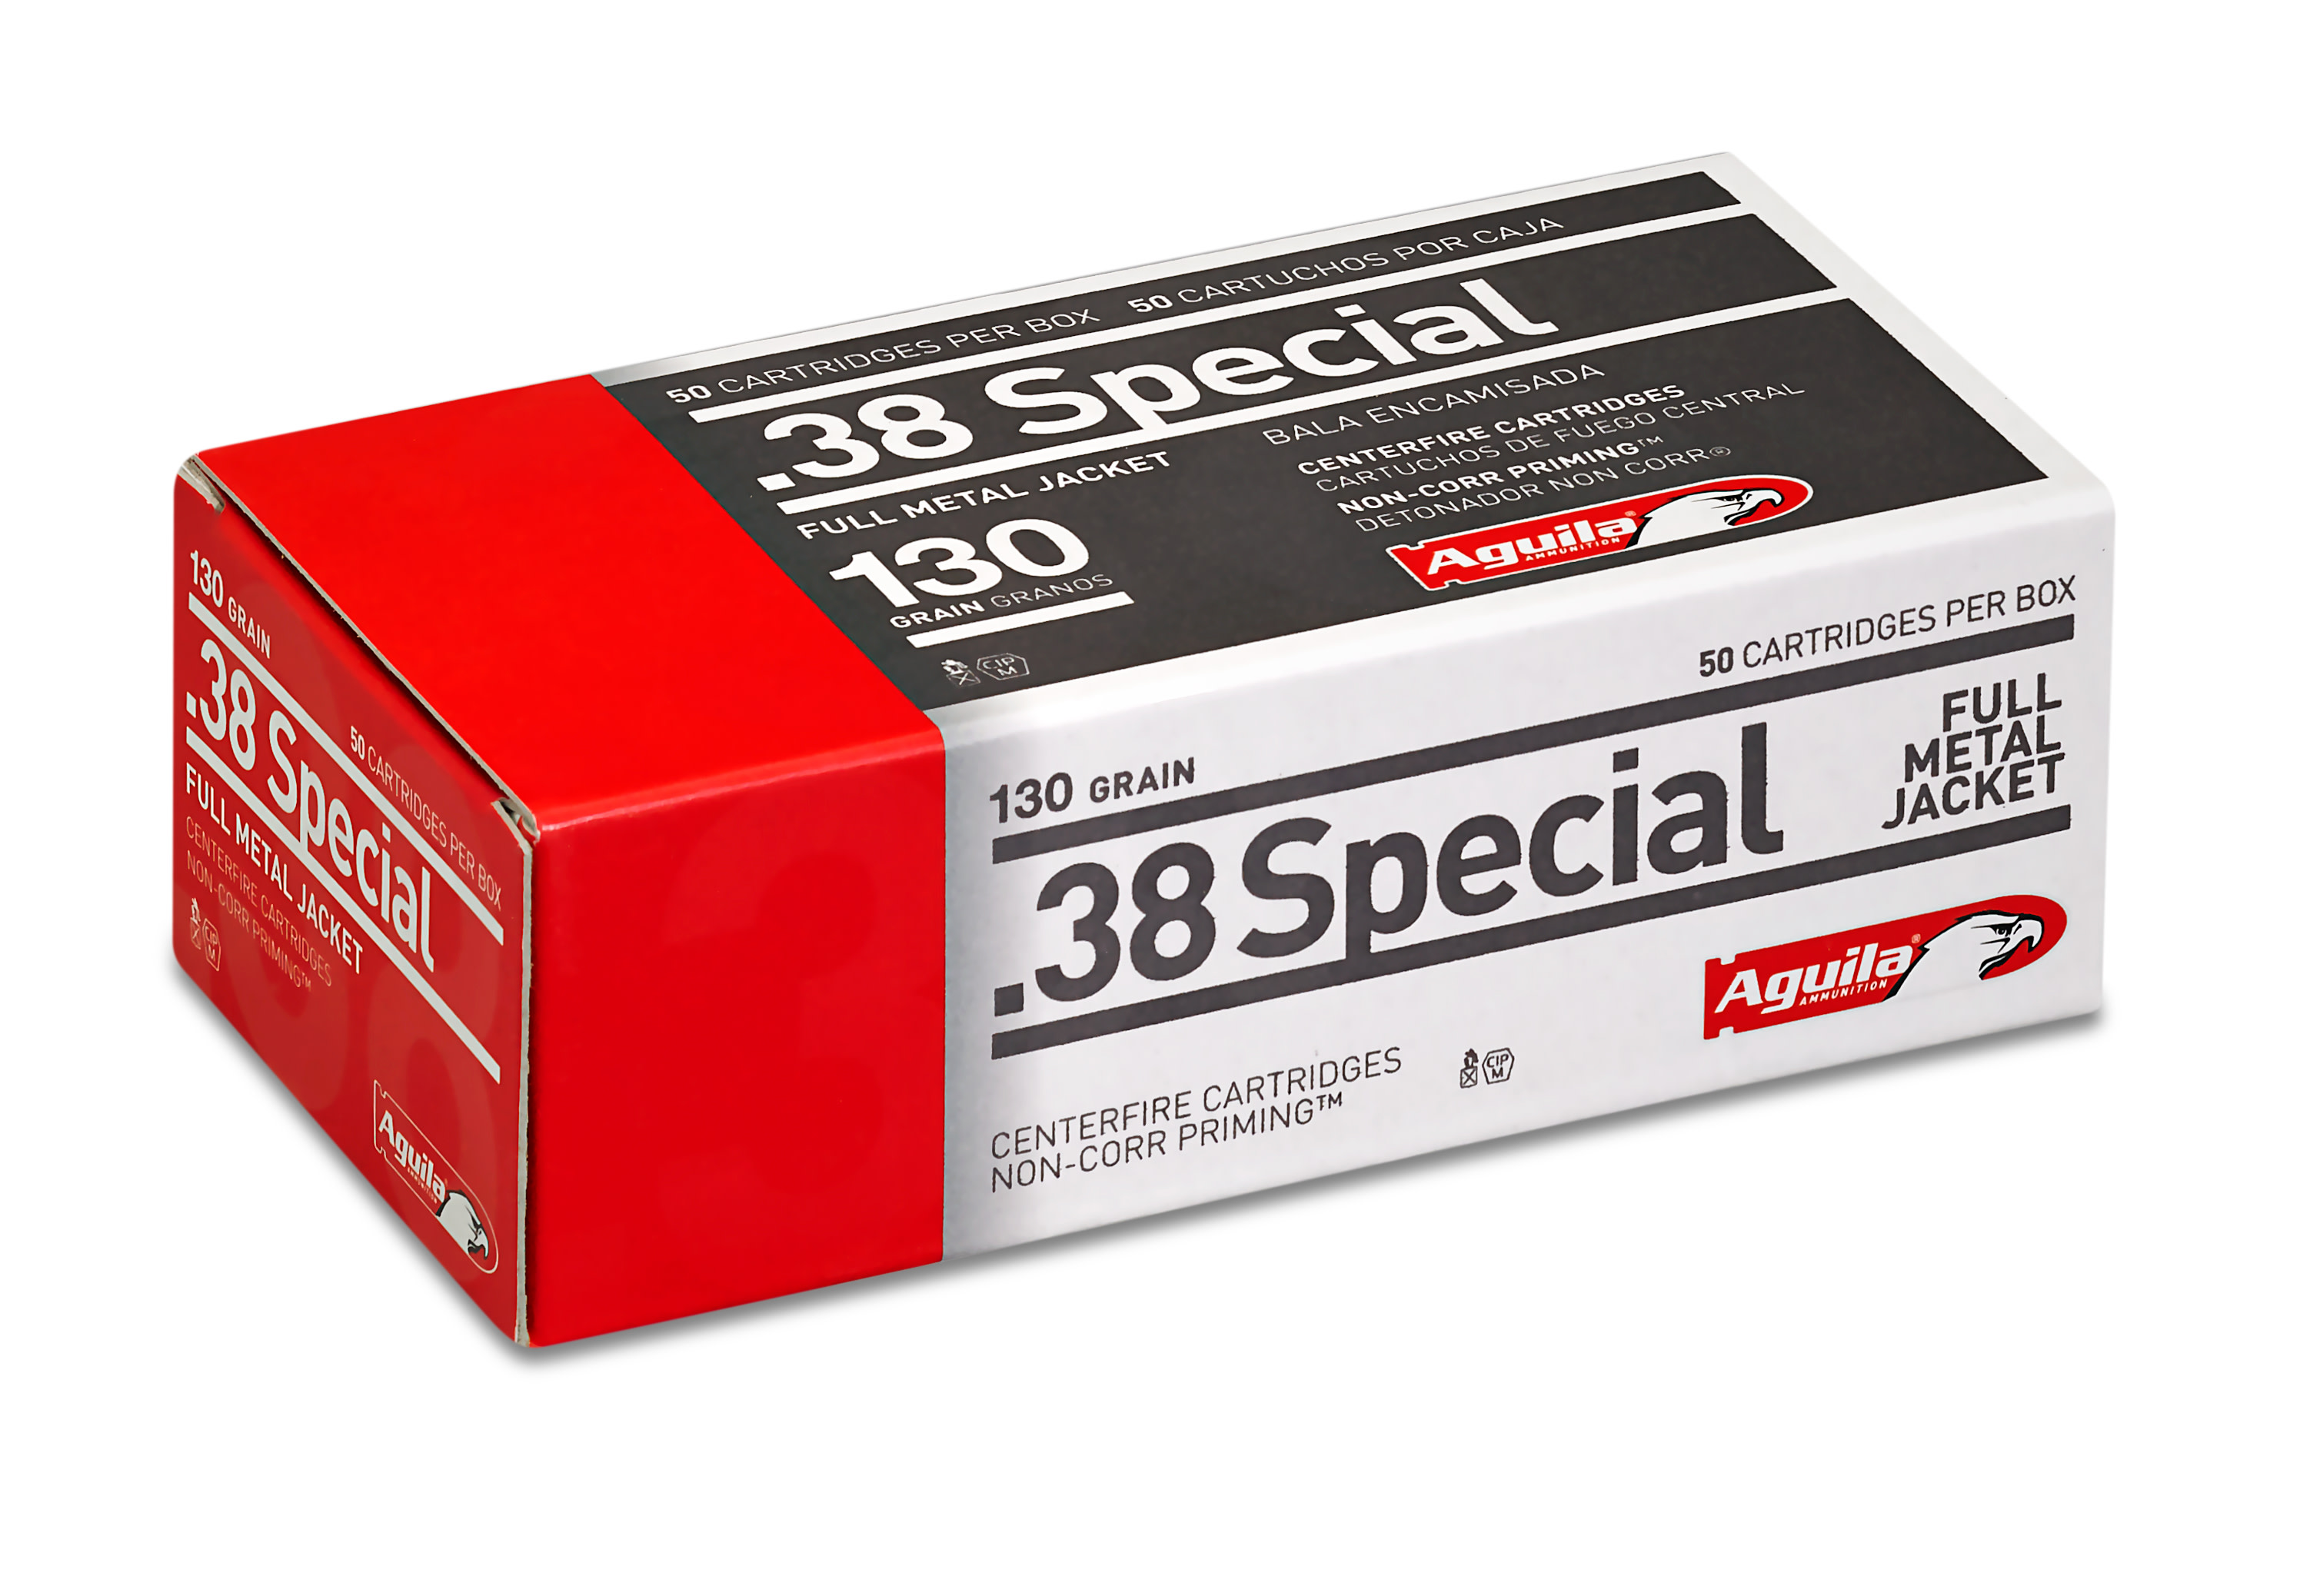 Aguila Ammunition 38 Special 130 Grain Full Metal Jacket Per 50